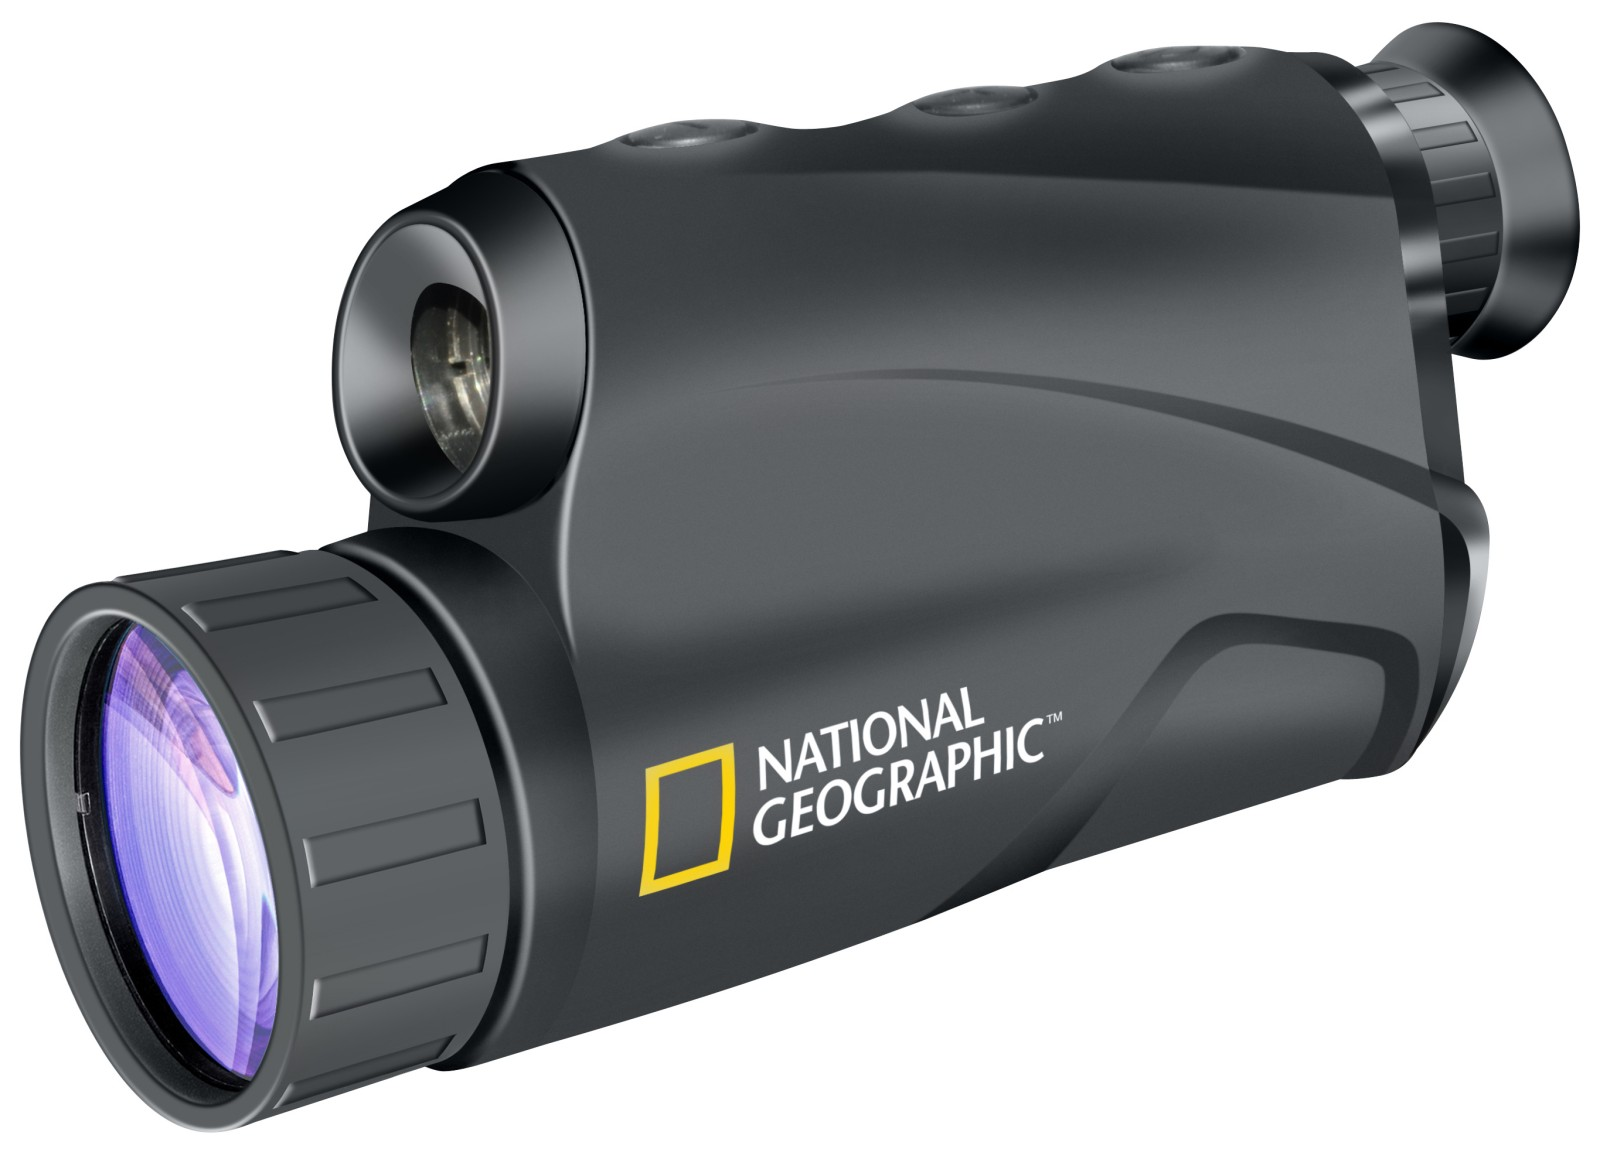 National Geographic 3x25 Night Vision Bresser